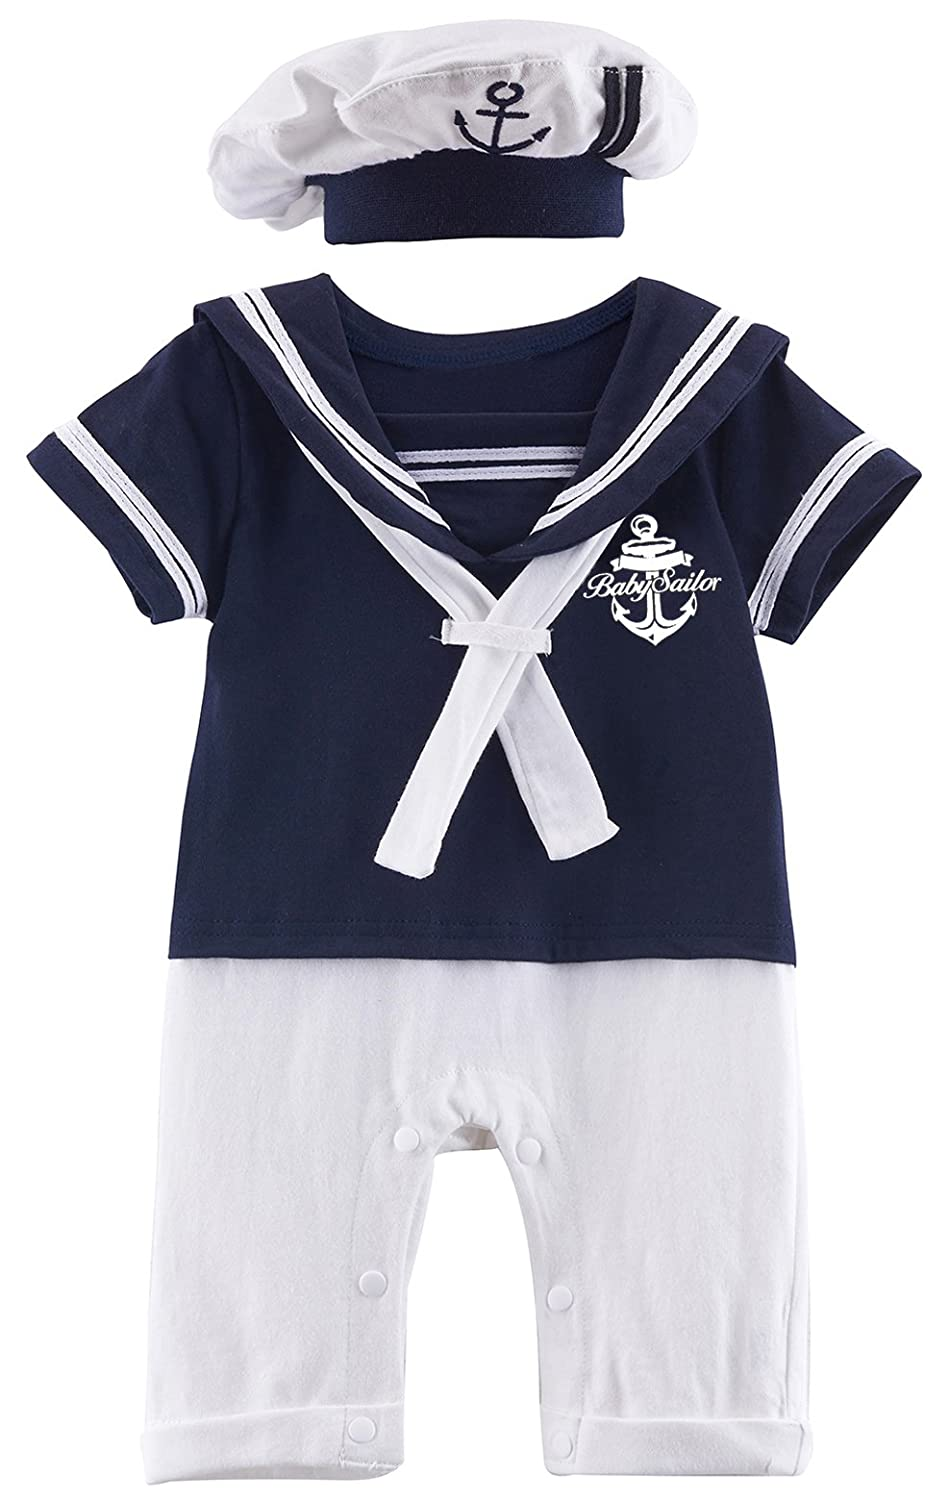 Mombebe Baby Boys' 2 Pieces Sailor Romper Outfit